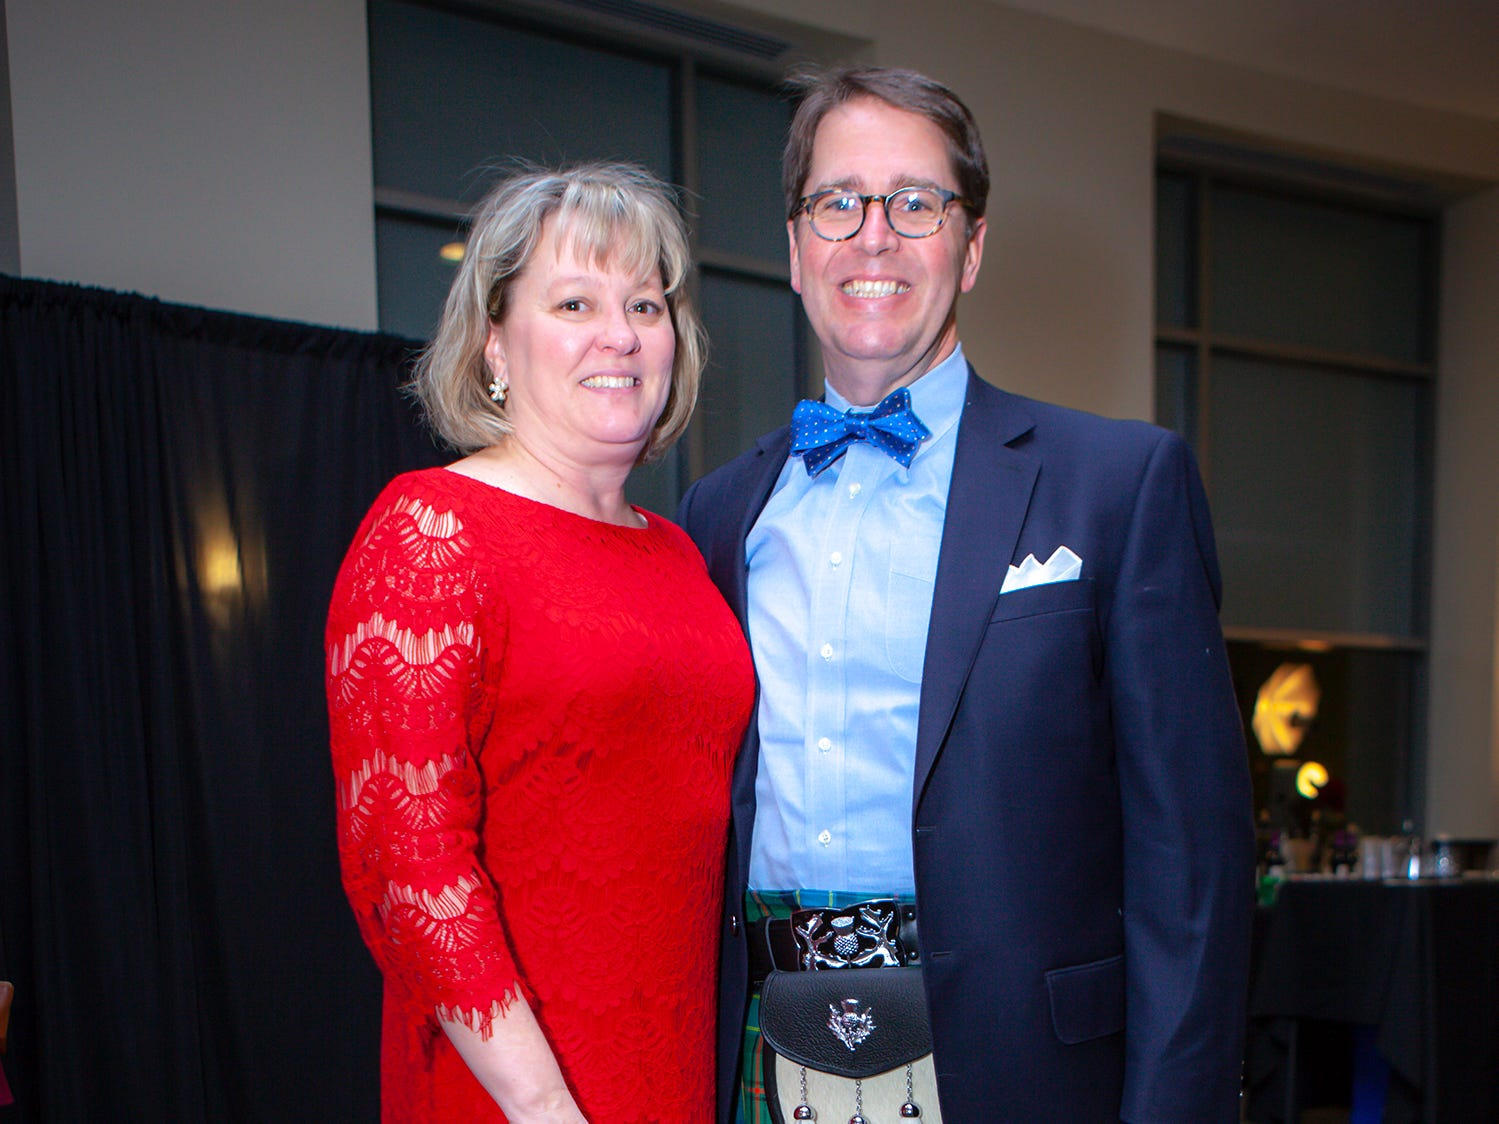 The Rev. John and Leila Hinkle at the 2019 Excellence in Education Gala, hosted by the City Schools Foundation on Friday, Jan. 25, 2019 at Stones River Country Club in Murfreesboro.